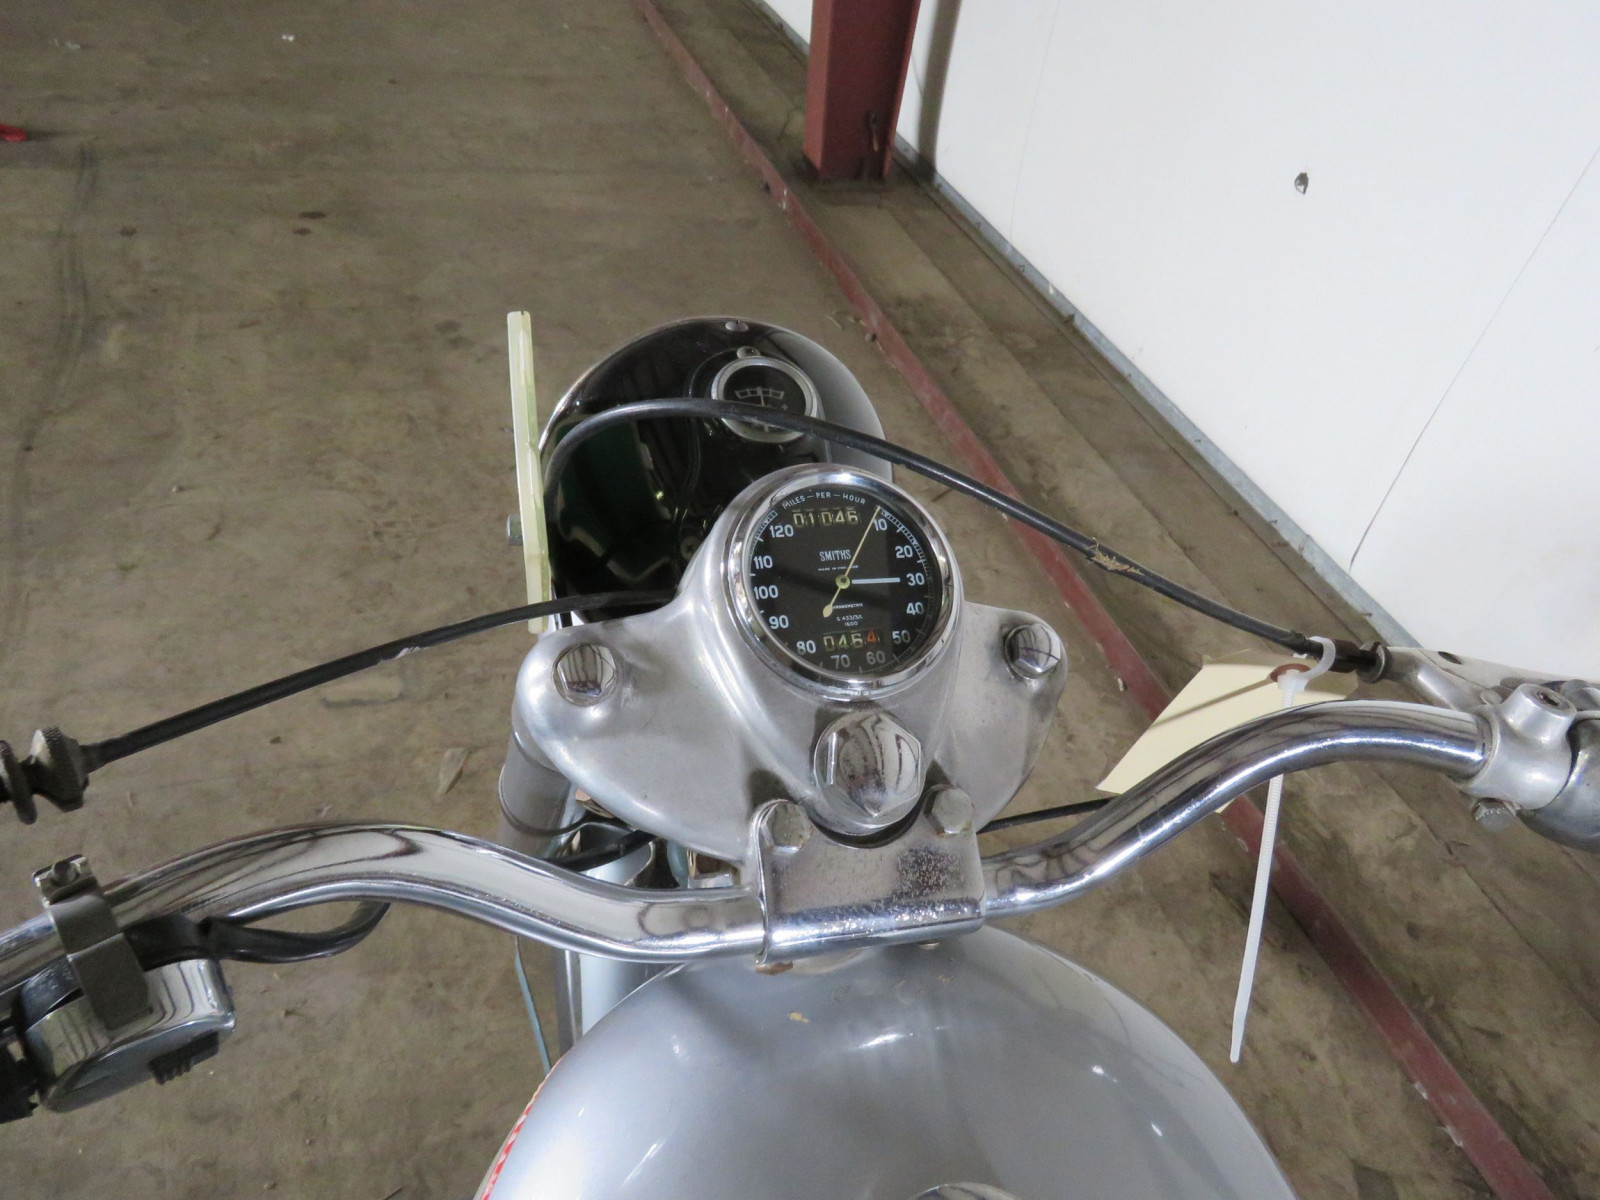 1952 Royal Enfield 500 Twin Motorcycle - Image 3